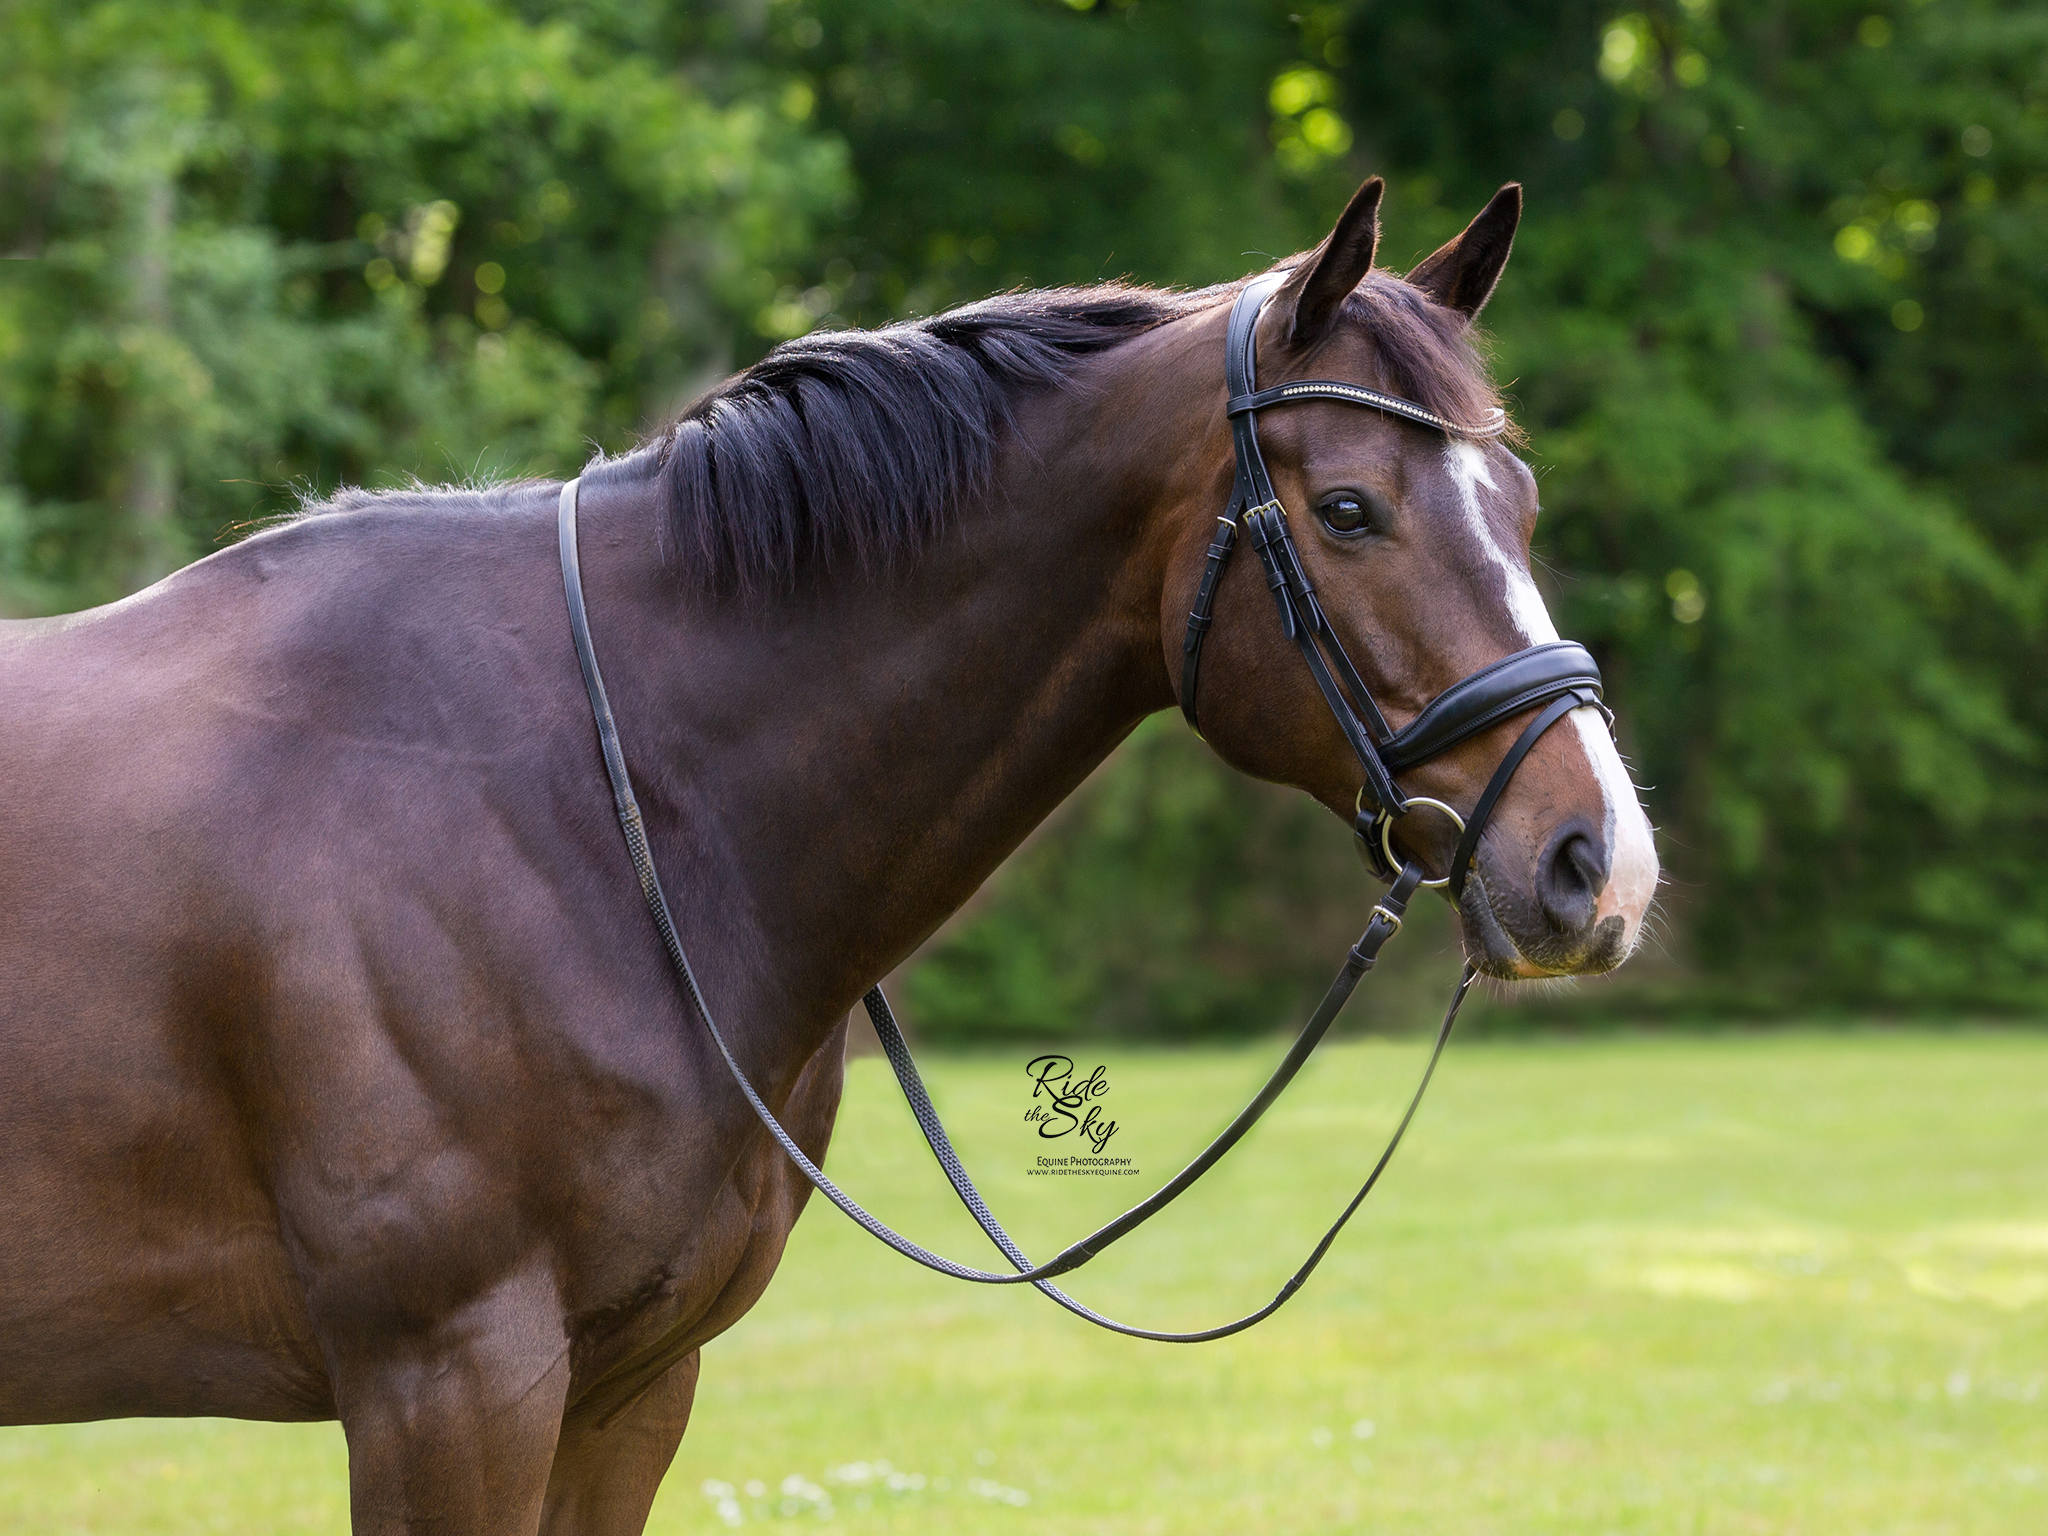 Thoroughbred Horse in bridle standing in summer field